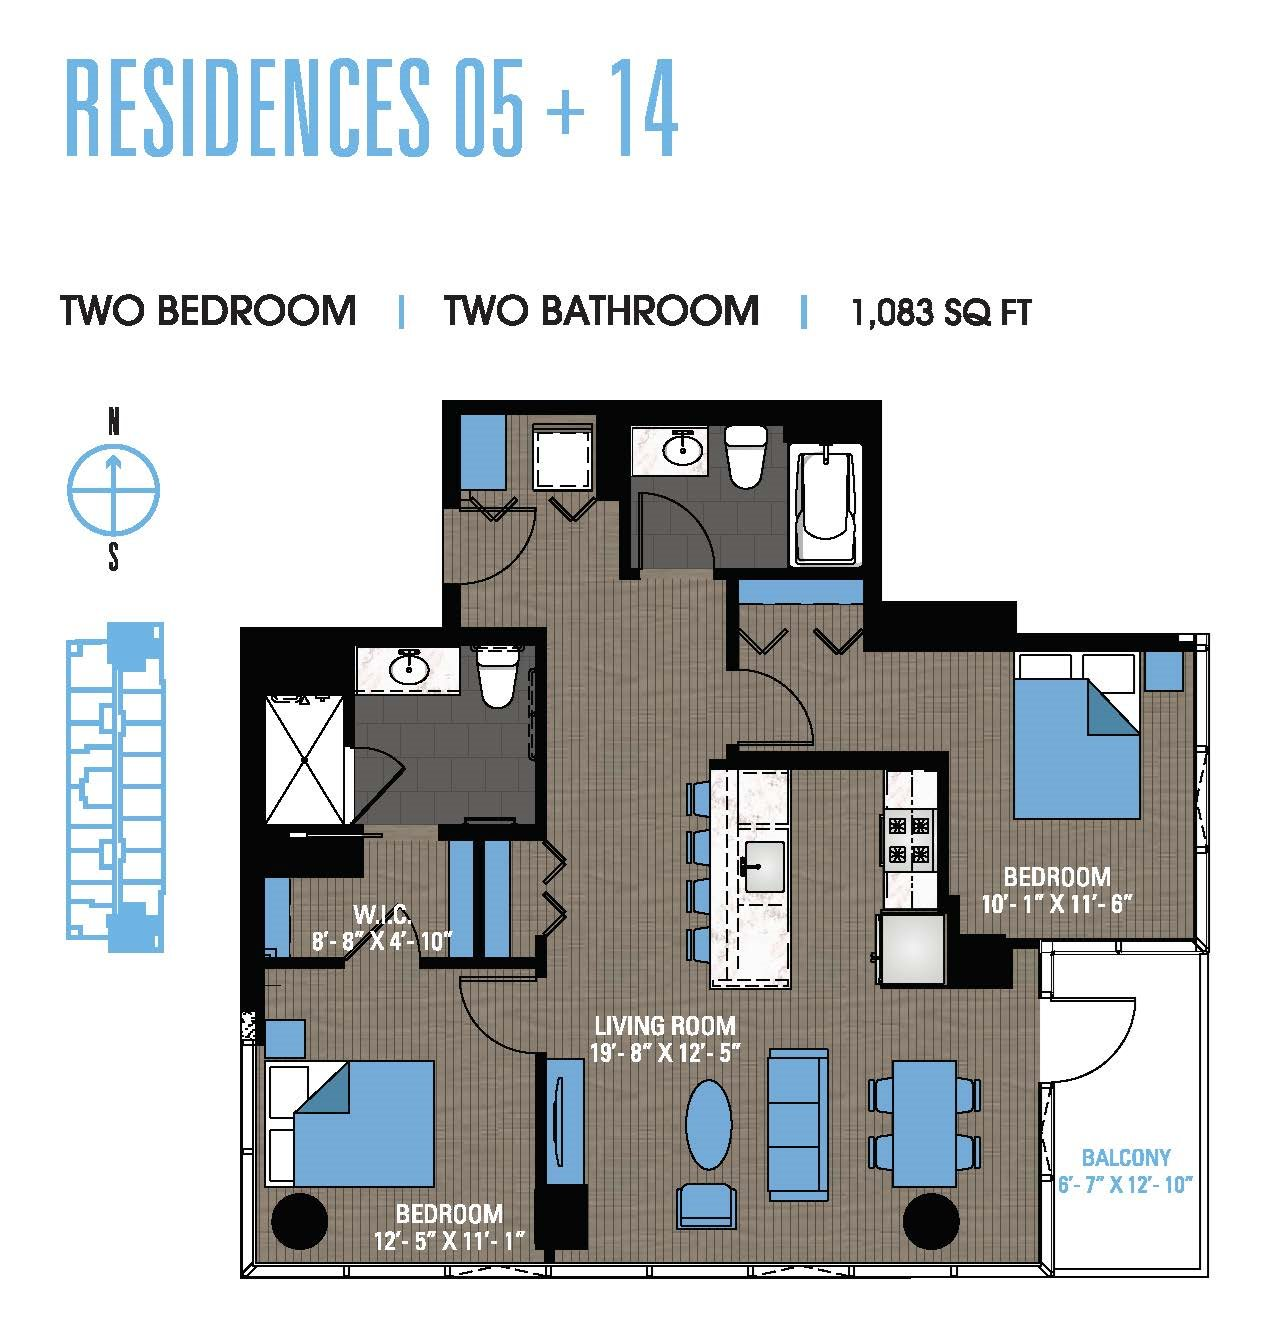 Two Bedroom 05+14 Floor Plan 10